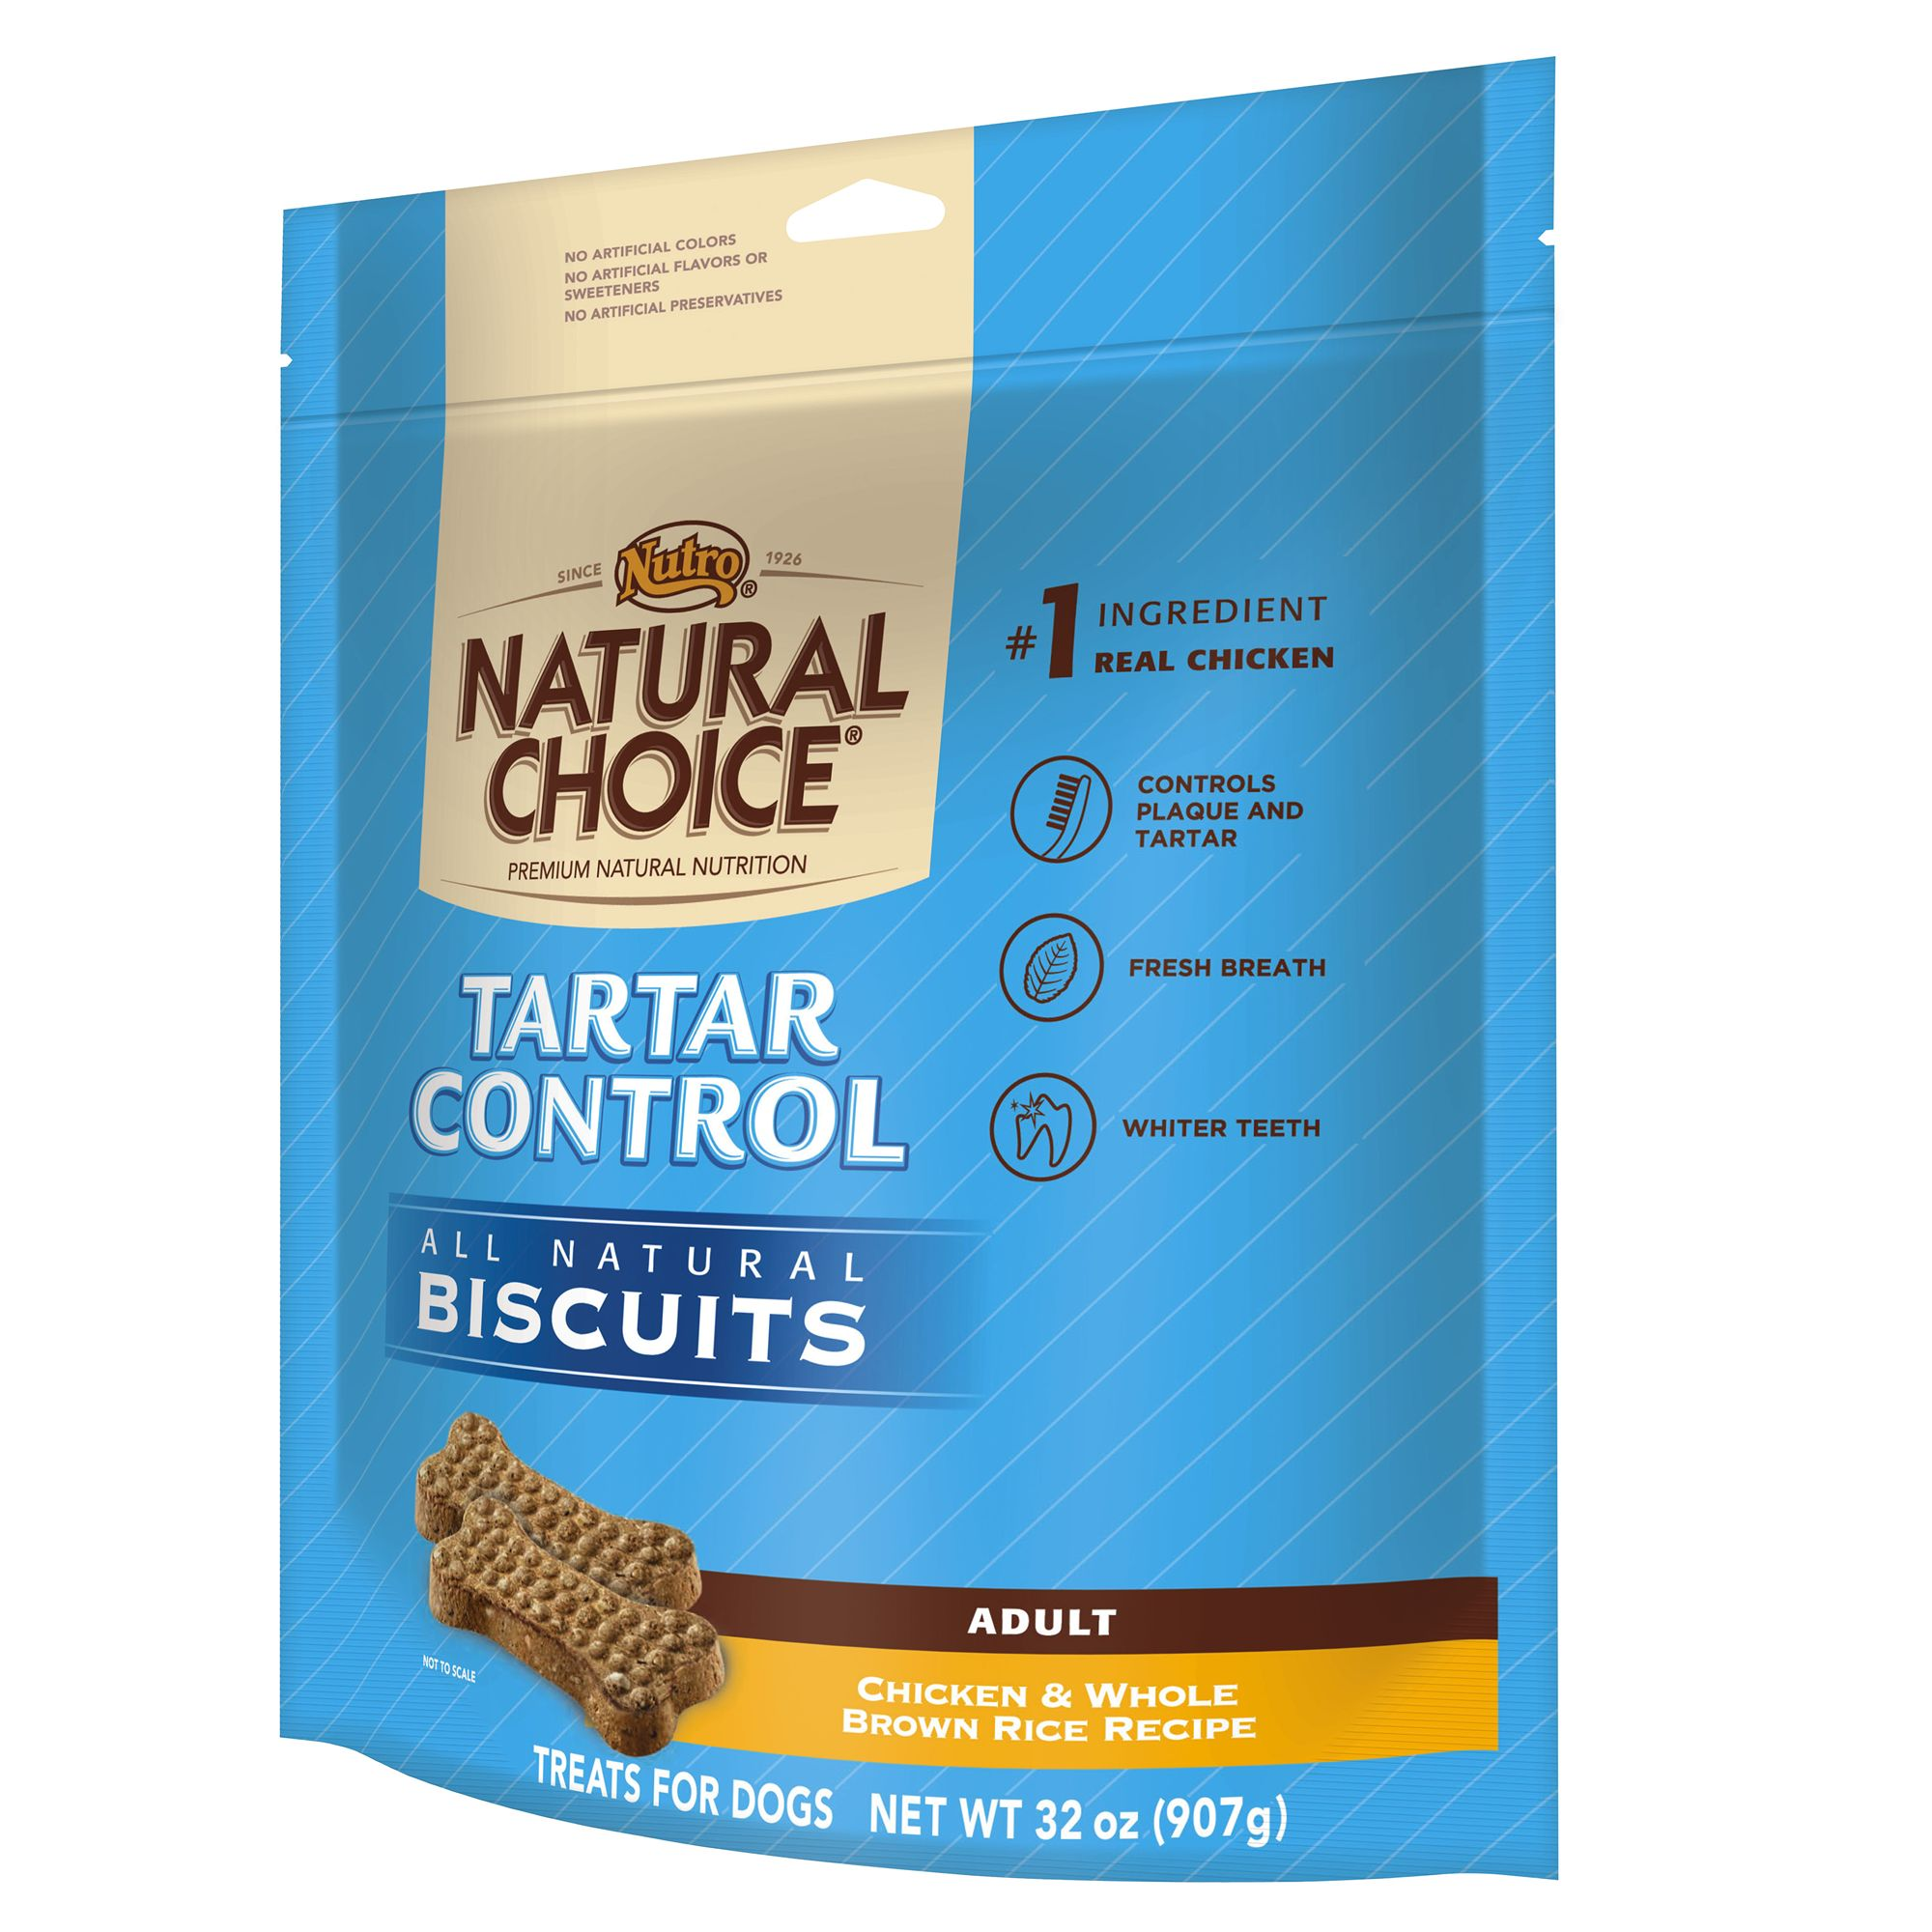 Nutro Natural Choice Tartar Control Adult Dog Biscuit Size 32 Oz